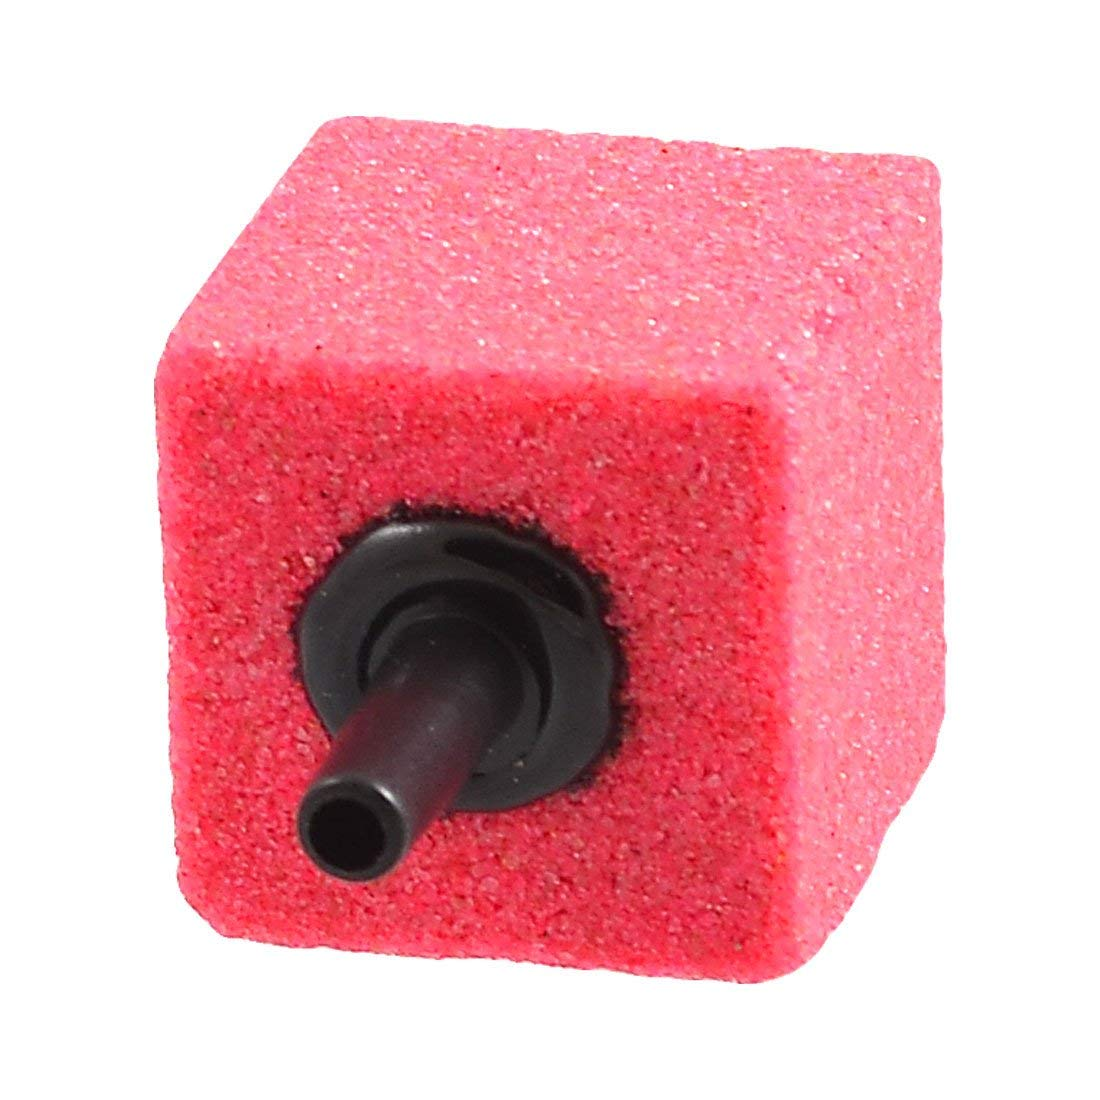 Uxcell Aquarium Airstone, 2.6 by 2.6 by 4cm, Hot Pink